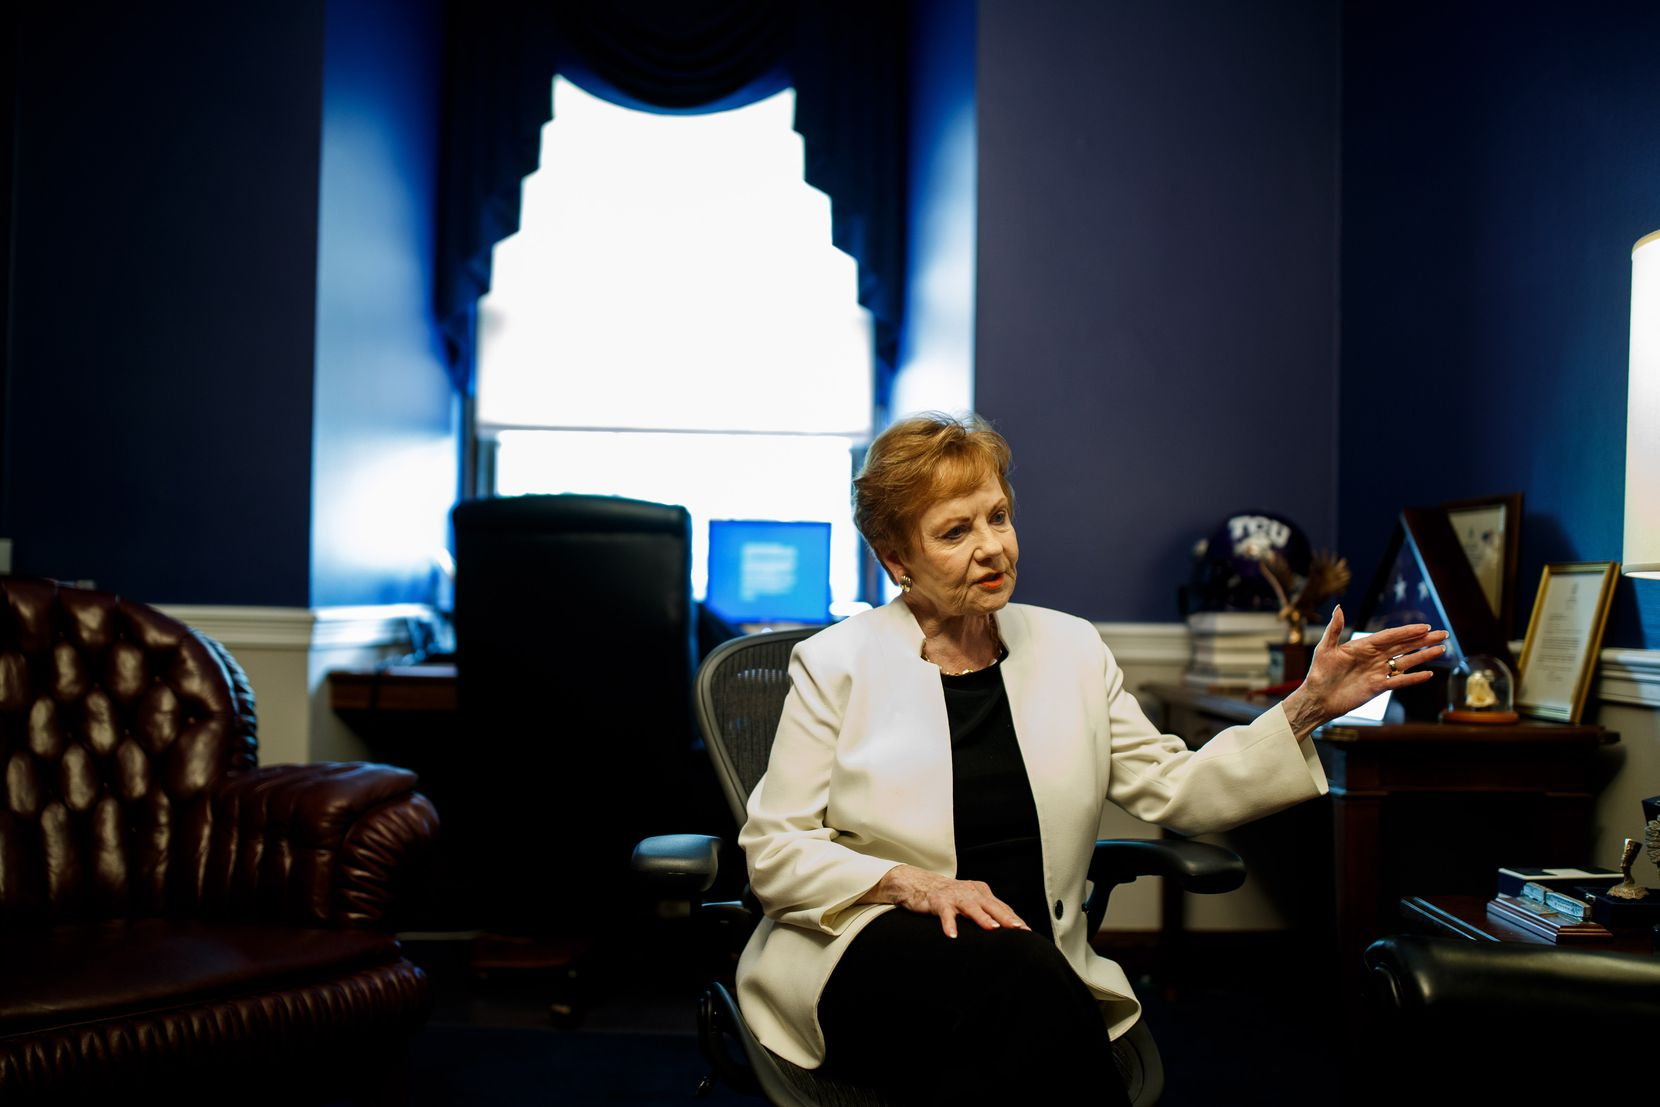 Congresswoman Kay Granger (R-TX 12) speaks during an interview in her office on Capitol Hill on July 26, 2019 in Washington, District of Columbia. (Ting Shen/ Special to The Dallas Morning News)